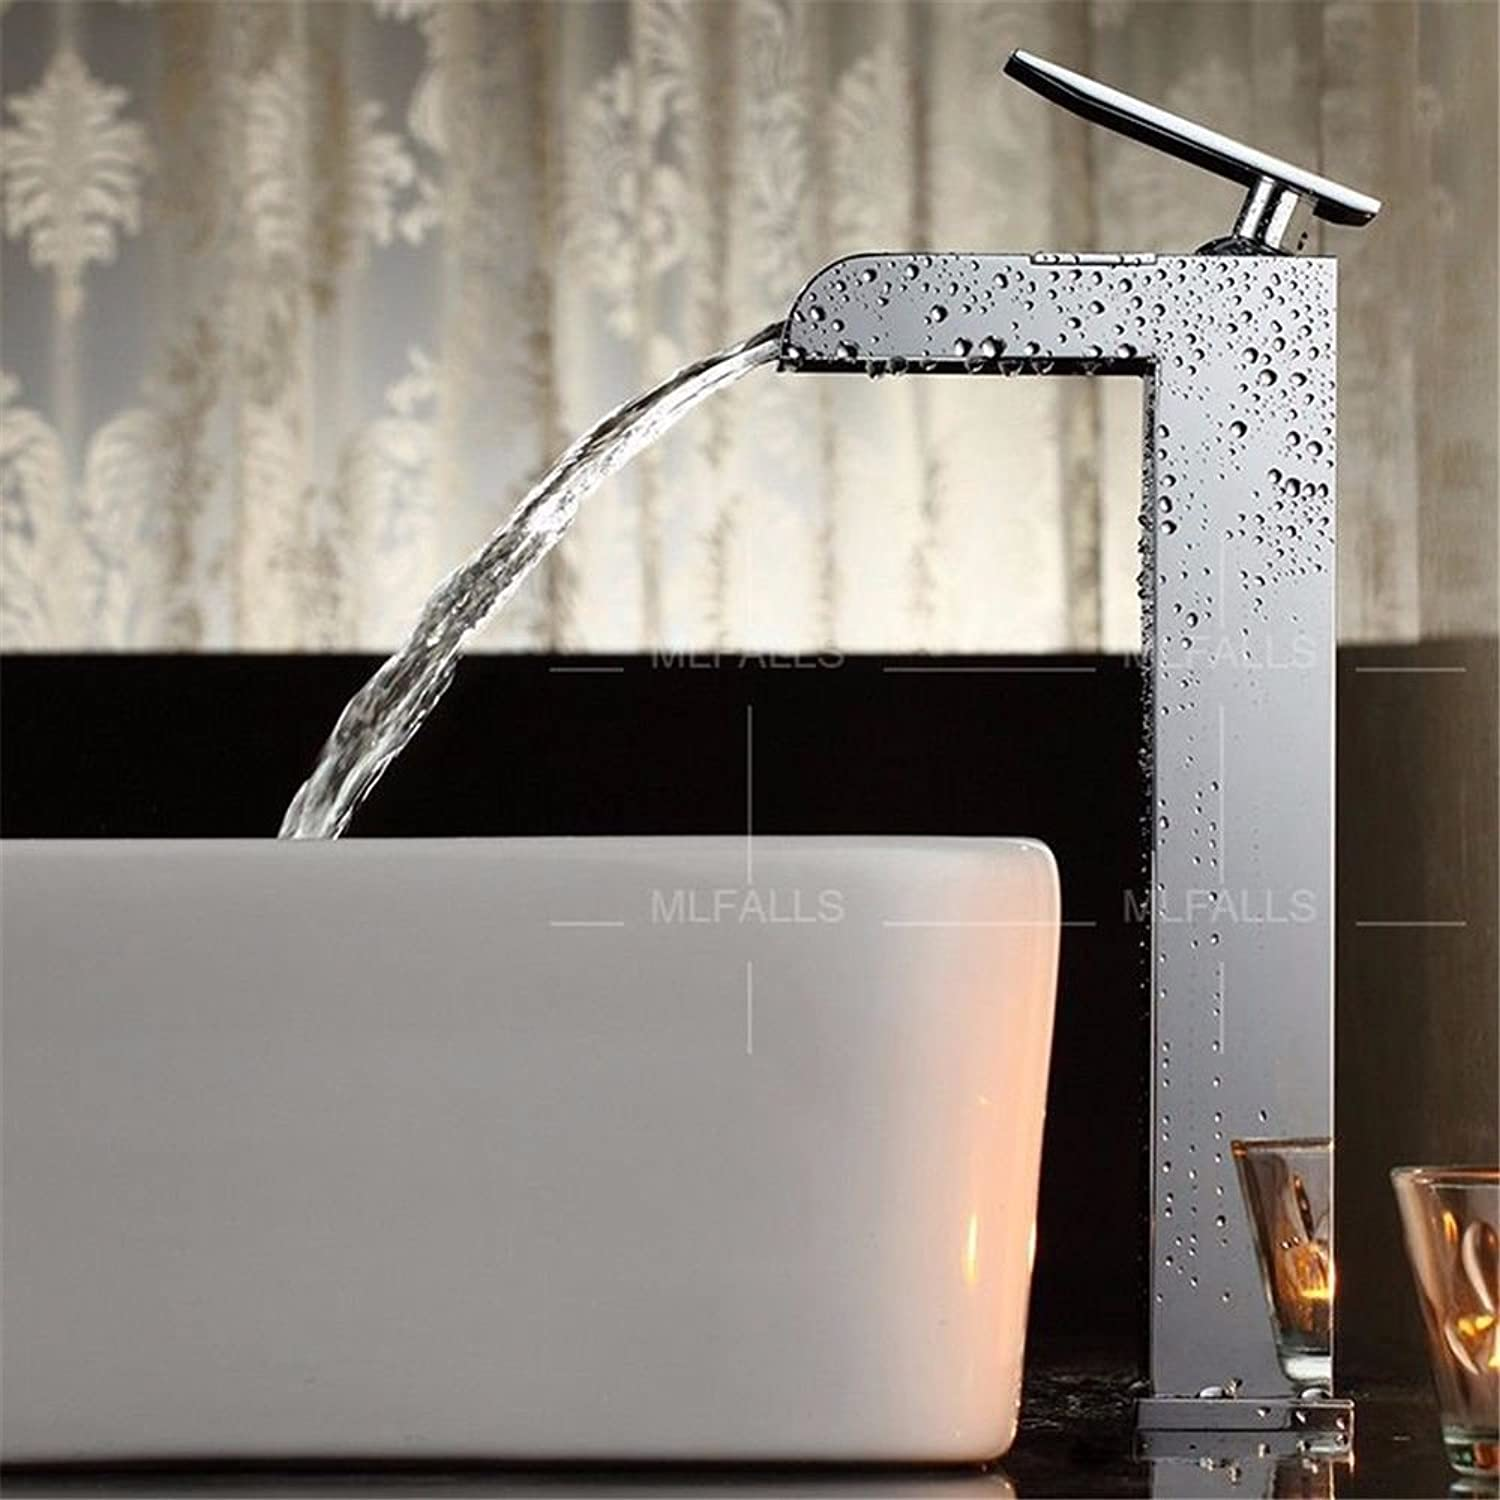 Lpophy Bathroom Sink Mixer Taps Faucet Bath Waterfall Cold and Hot Water Tap for Washroom Bathroom and Kitchen Silver Chrome Brass Square Single Handle Single Hole Ceramic Valve Hot and Cold Water